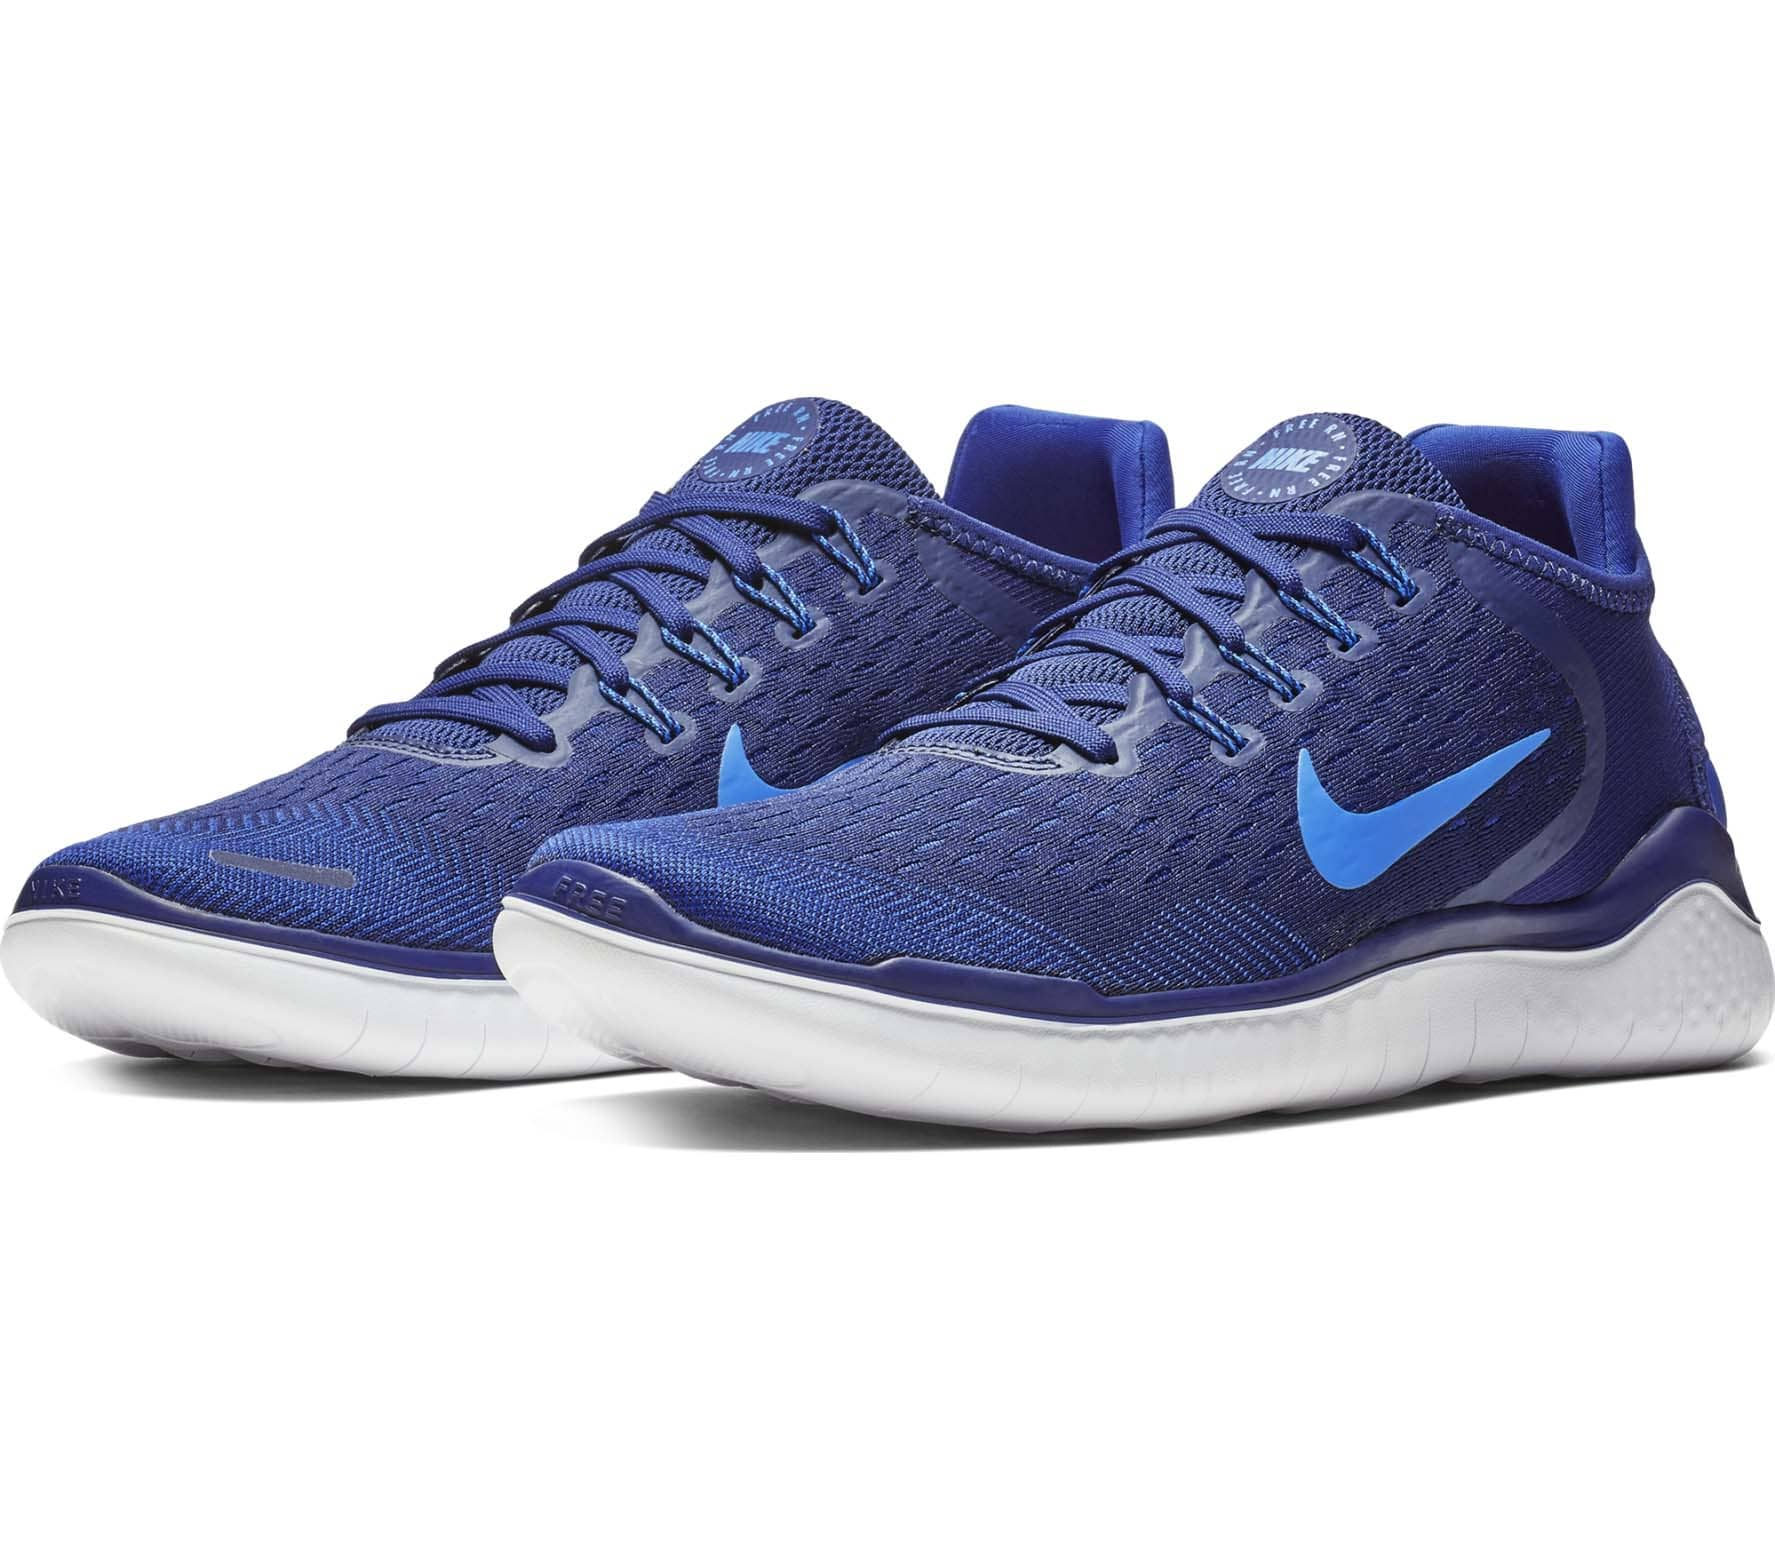 nike free rn 2018 herren laufschuh blau im online shop. Black Bedroom Furniture Sets. Home Design Ideas